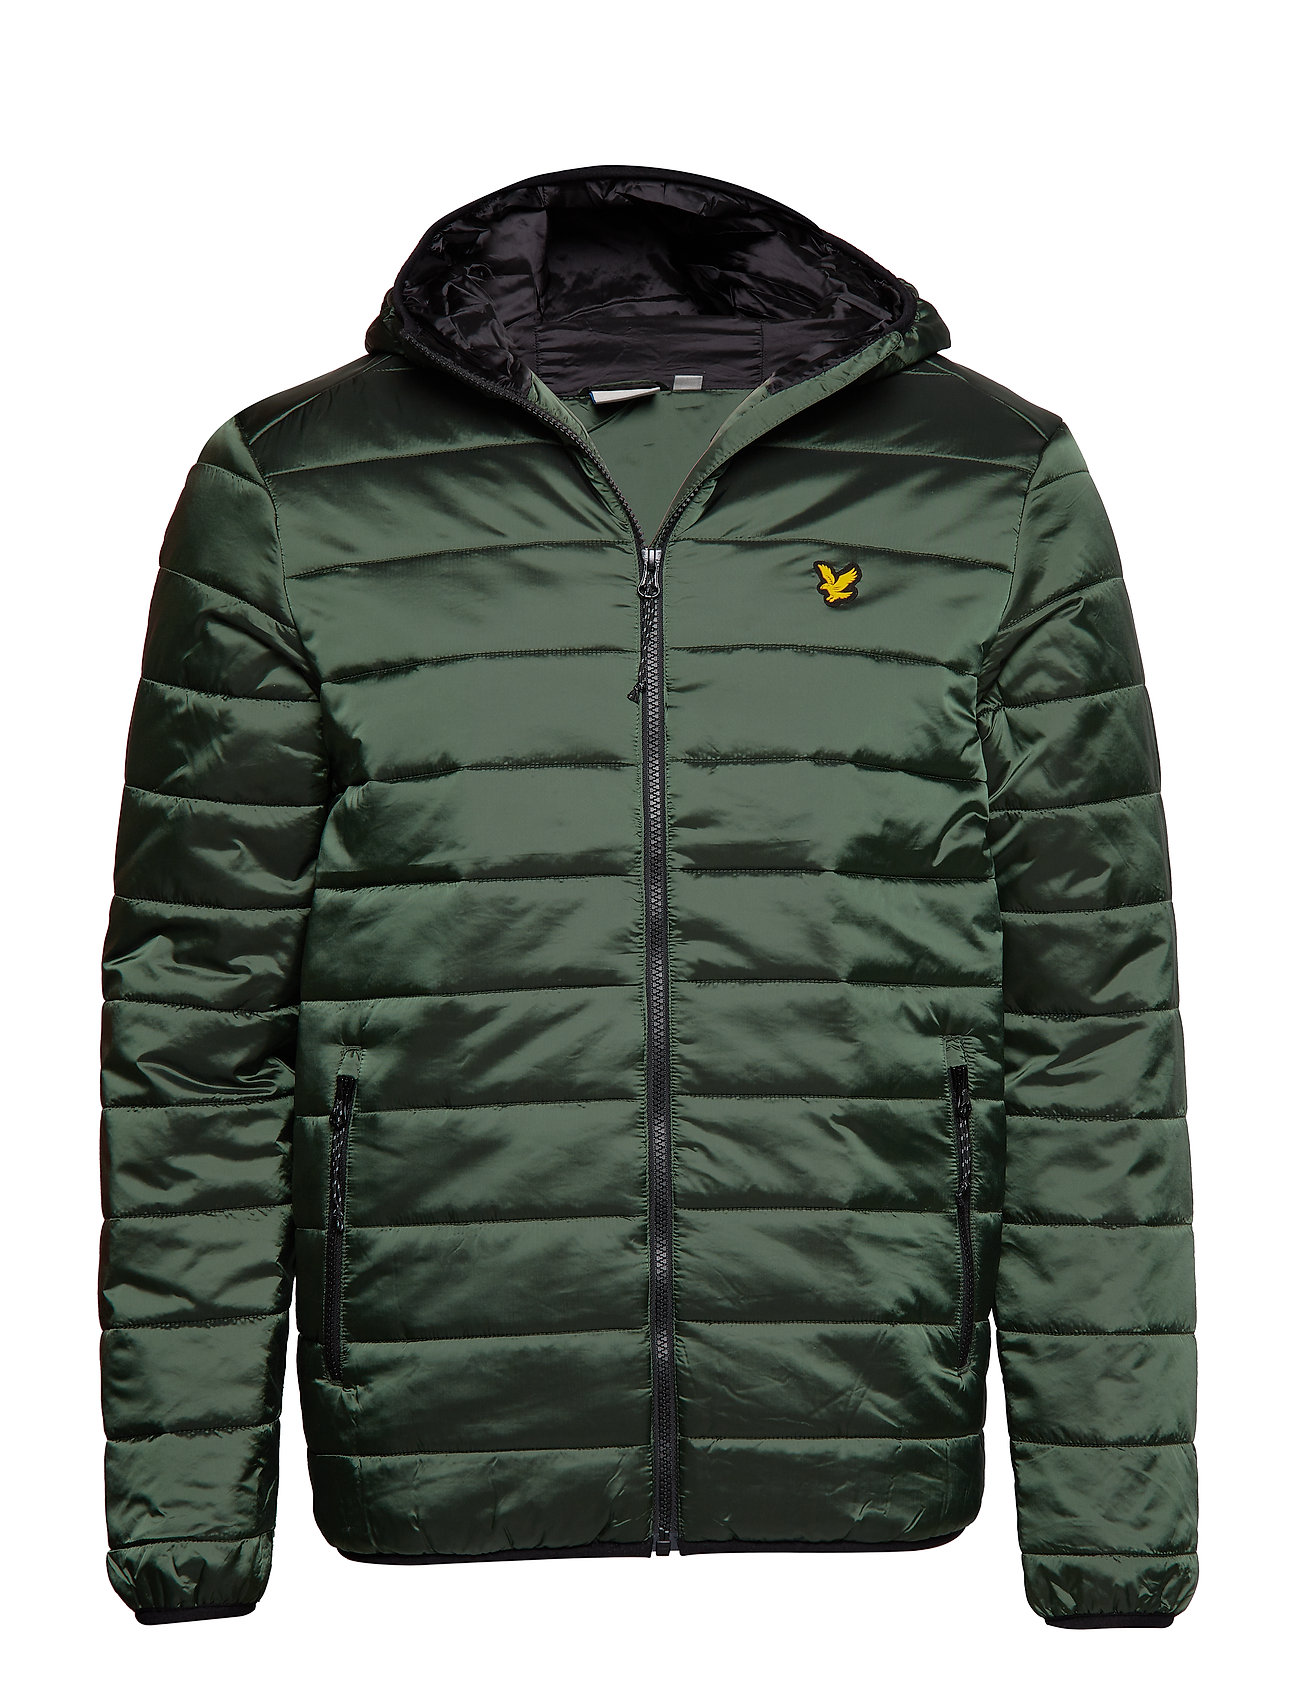 Lyle & Scott Sport Cooke Jacket : Insulated Foil Jacket with Hood - OLIVE